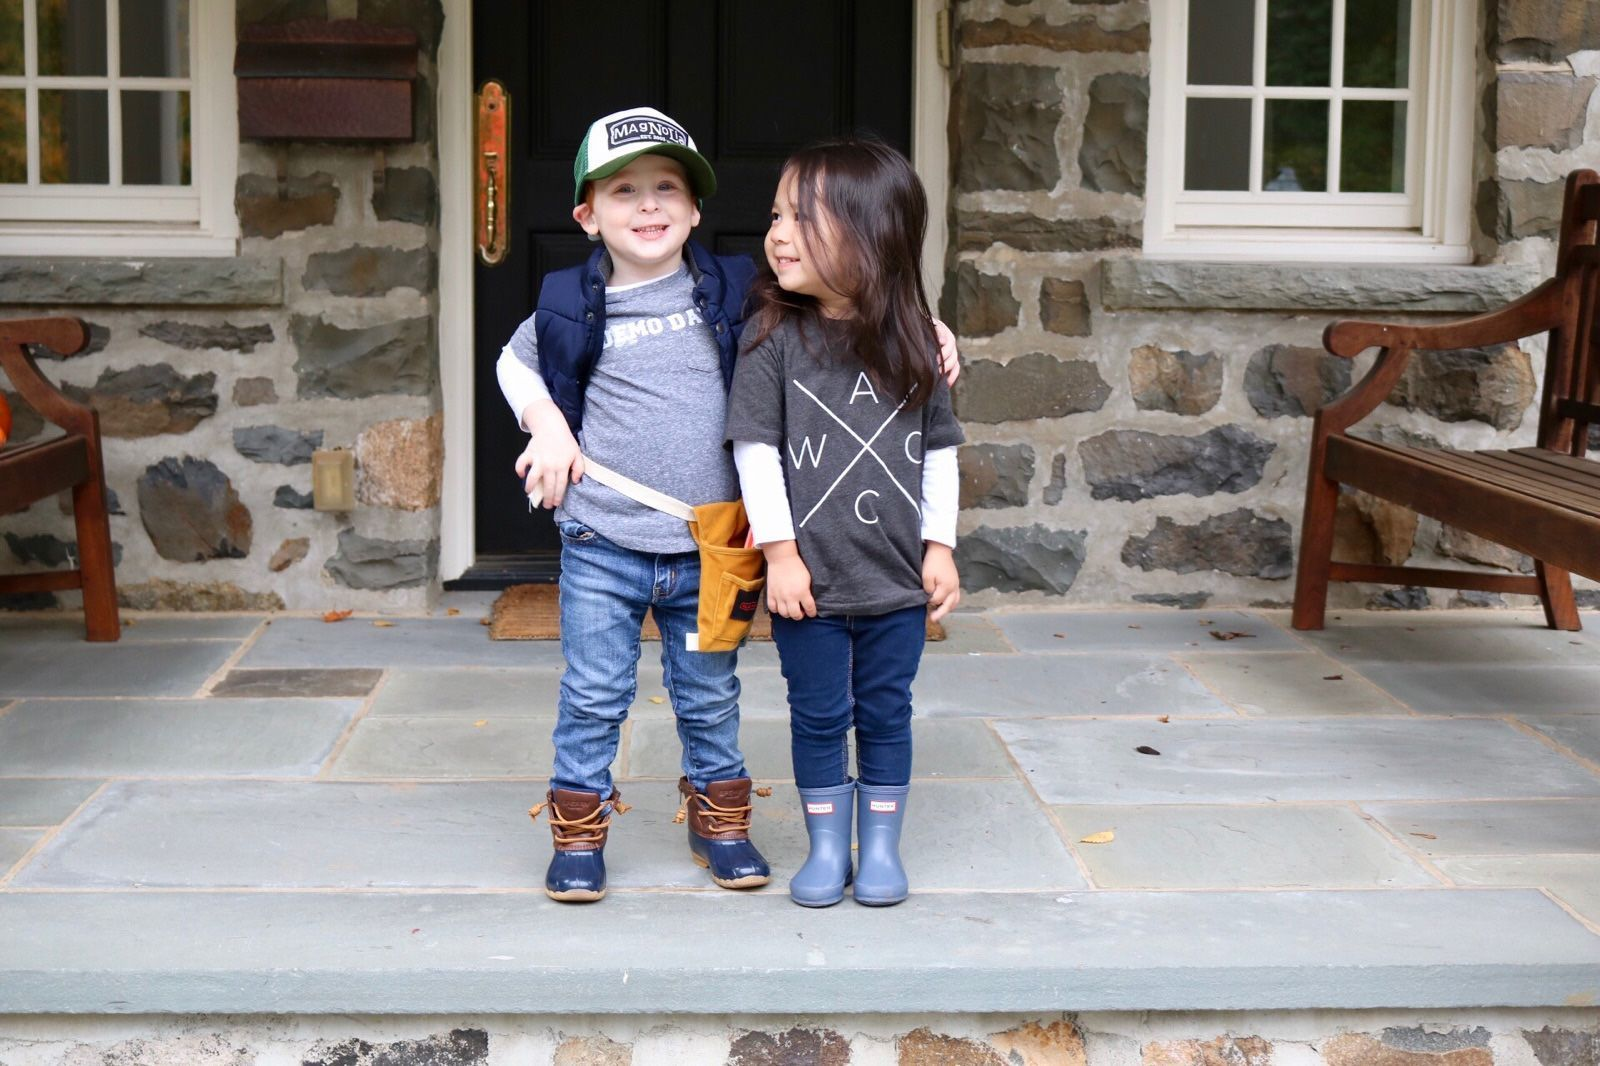 Toddler Best Friends Dress Up as Chip and Joanna Gaines in the Most Adorable Halloween Costume #chipandjoannagainescostume Toddler Best Friends Dress Up as Chip and Joanna Gaines in the Most Adorable Halloween Costume #chipandjoannagainescostume Toddler Best Friends Dress Up as Chip and Joanna Gaines in the Most Adorable Halloween Costume #chipandjoannagainescostume Toddler Best Friends Dress Up as Chip and Joanna Gaines in the Most Adorable Halloween Costume #chipandjoannagainescostume